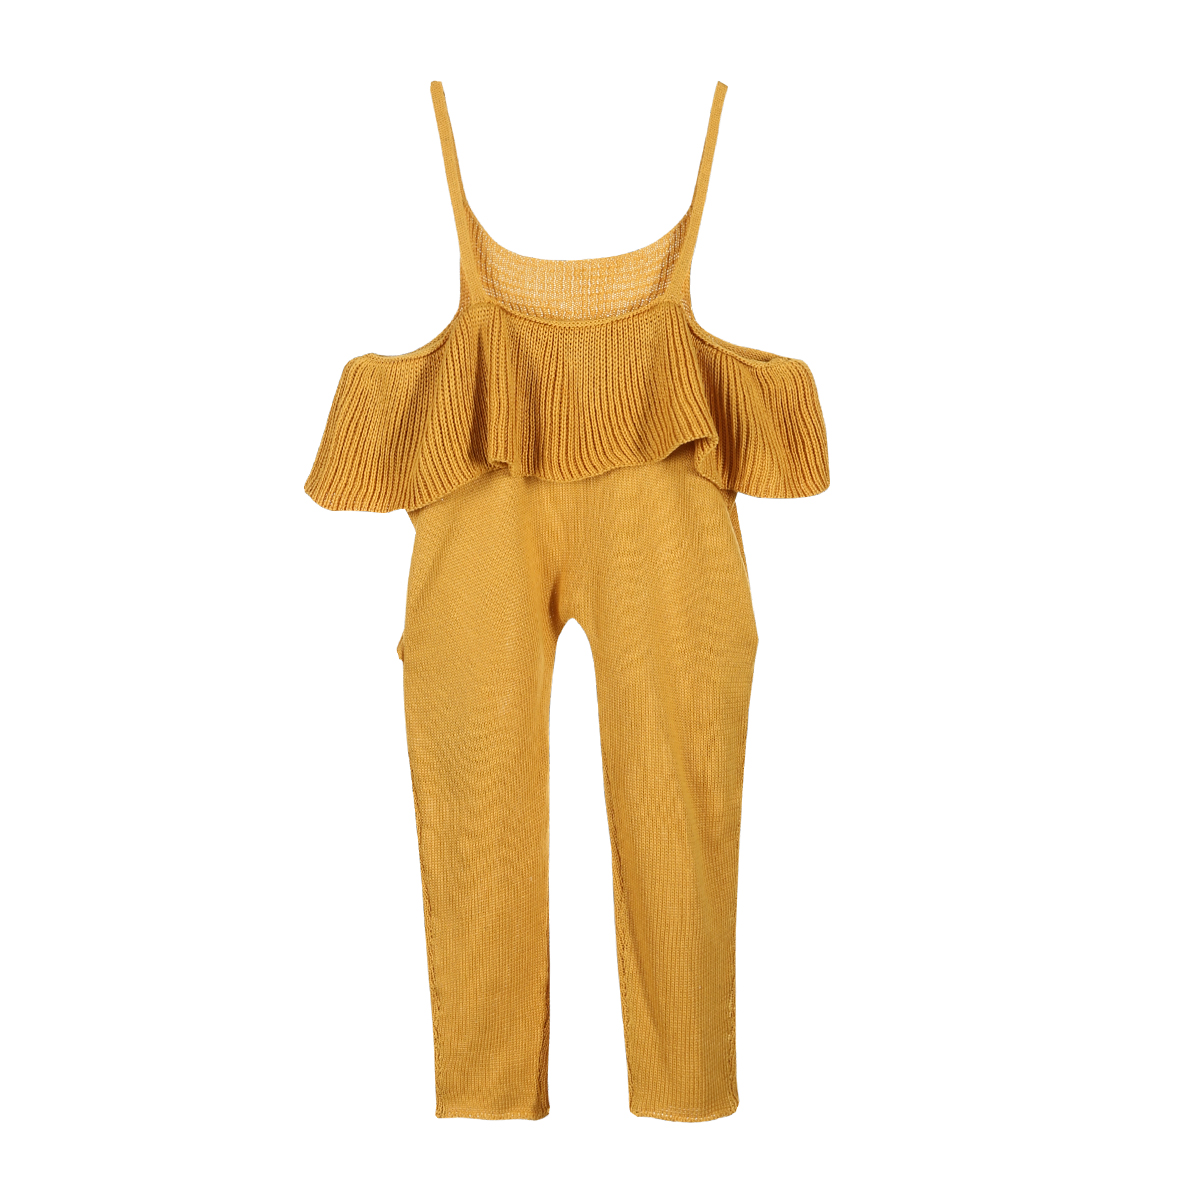 Fashion Toddle Kids Off Shoulder Sweater Sleeveless Ruffles Romper Jumpsuit Clothes Sweet Girls Winter Kintted Clothing Outfit